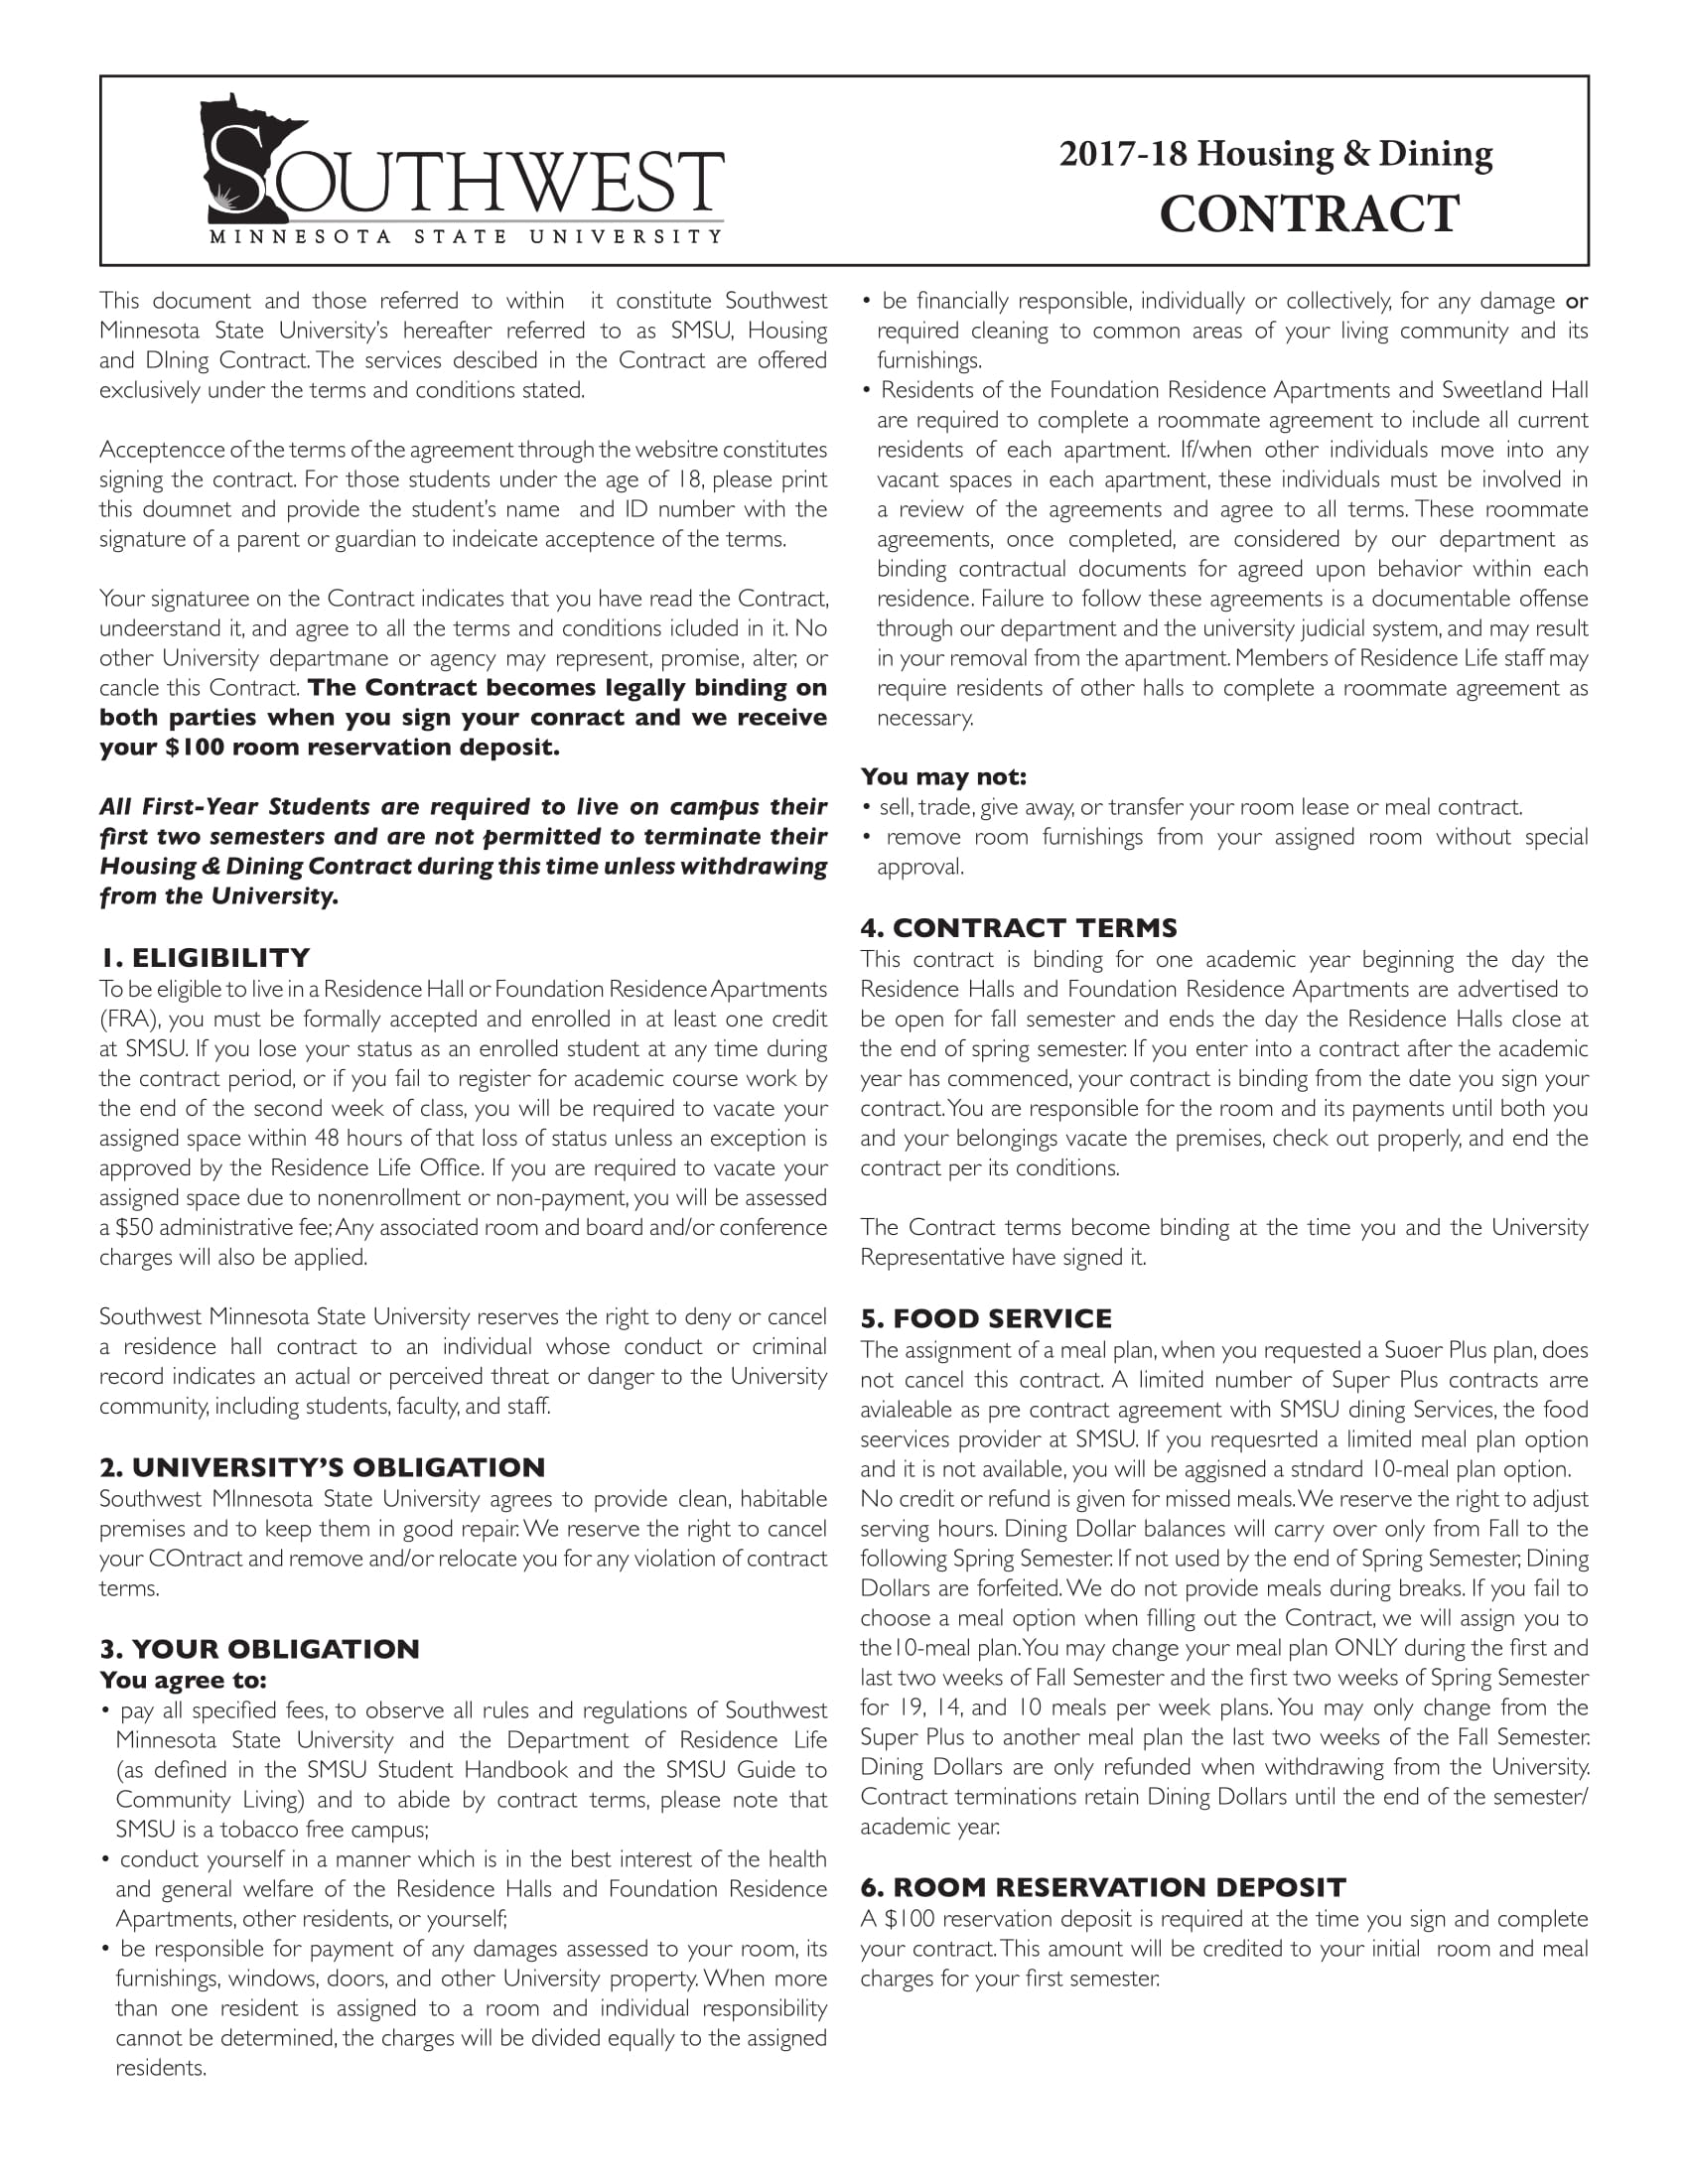 Housing Contract Forms PDF - Housing contract template